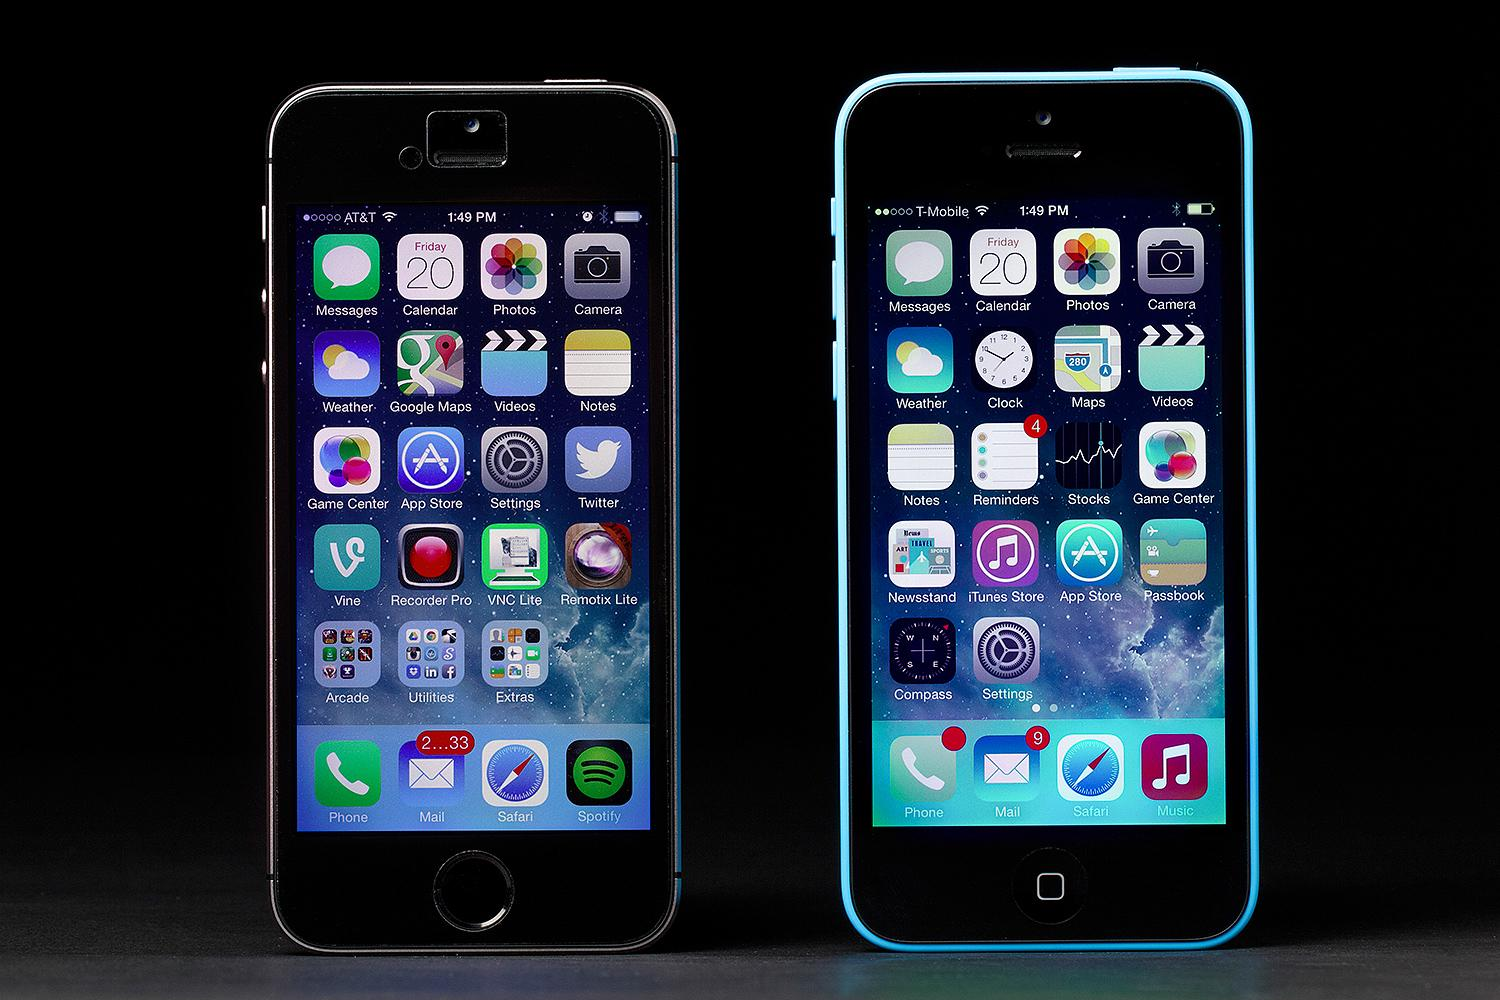 iphone 5c vs 5s iphone 5s vs iphone 5c comparison review what s the 1256